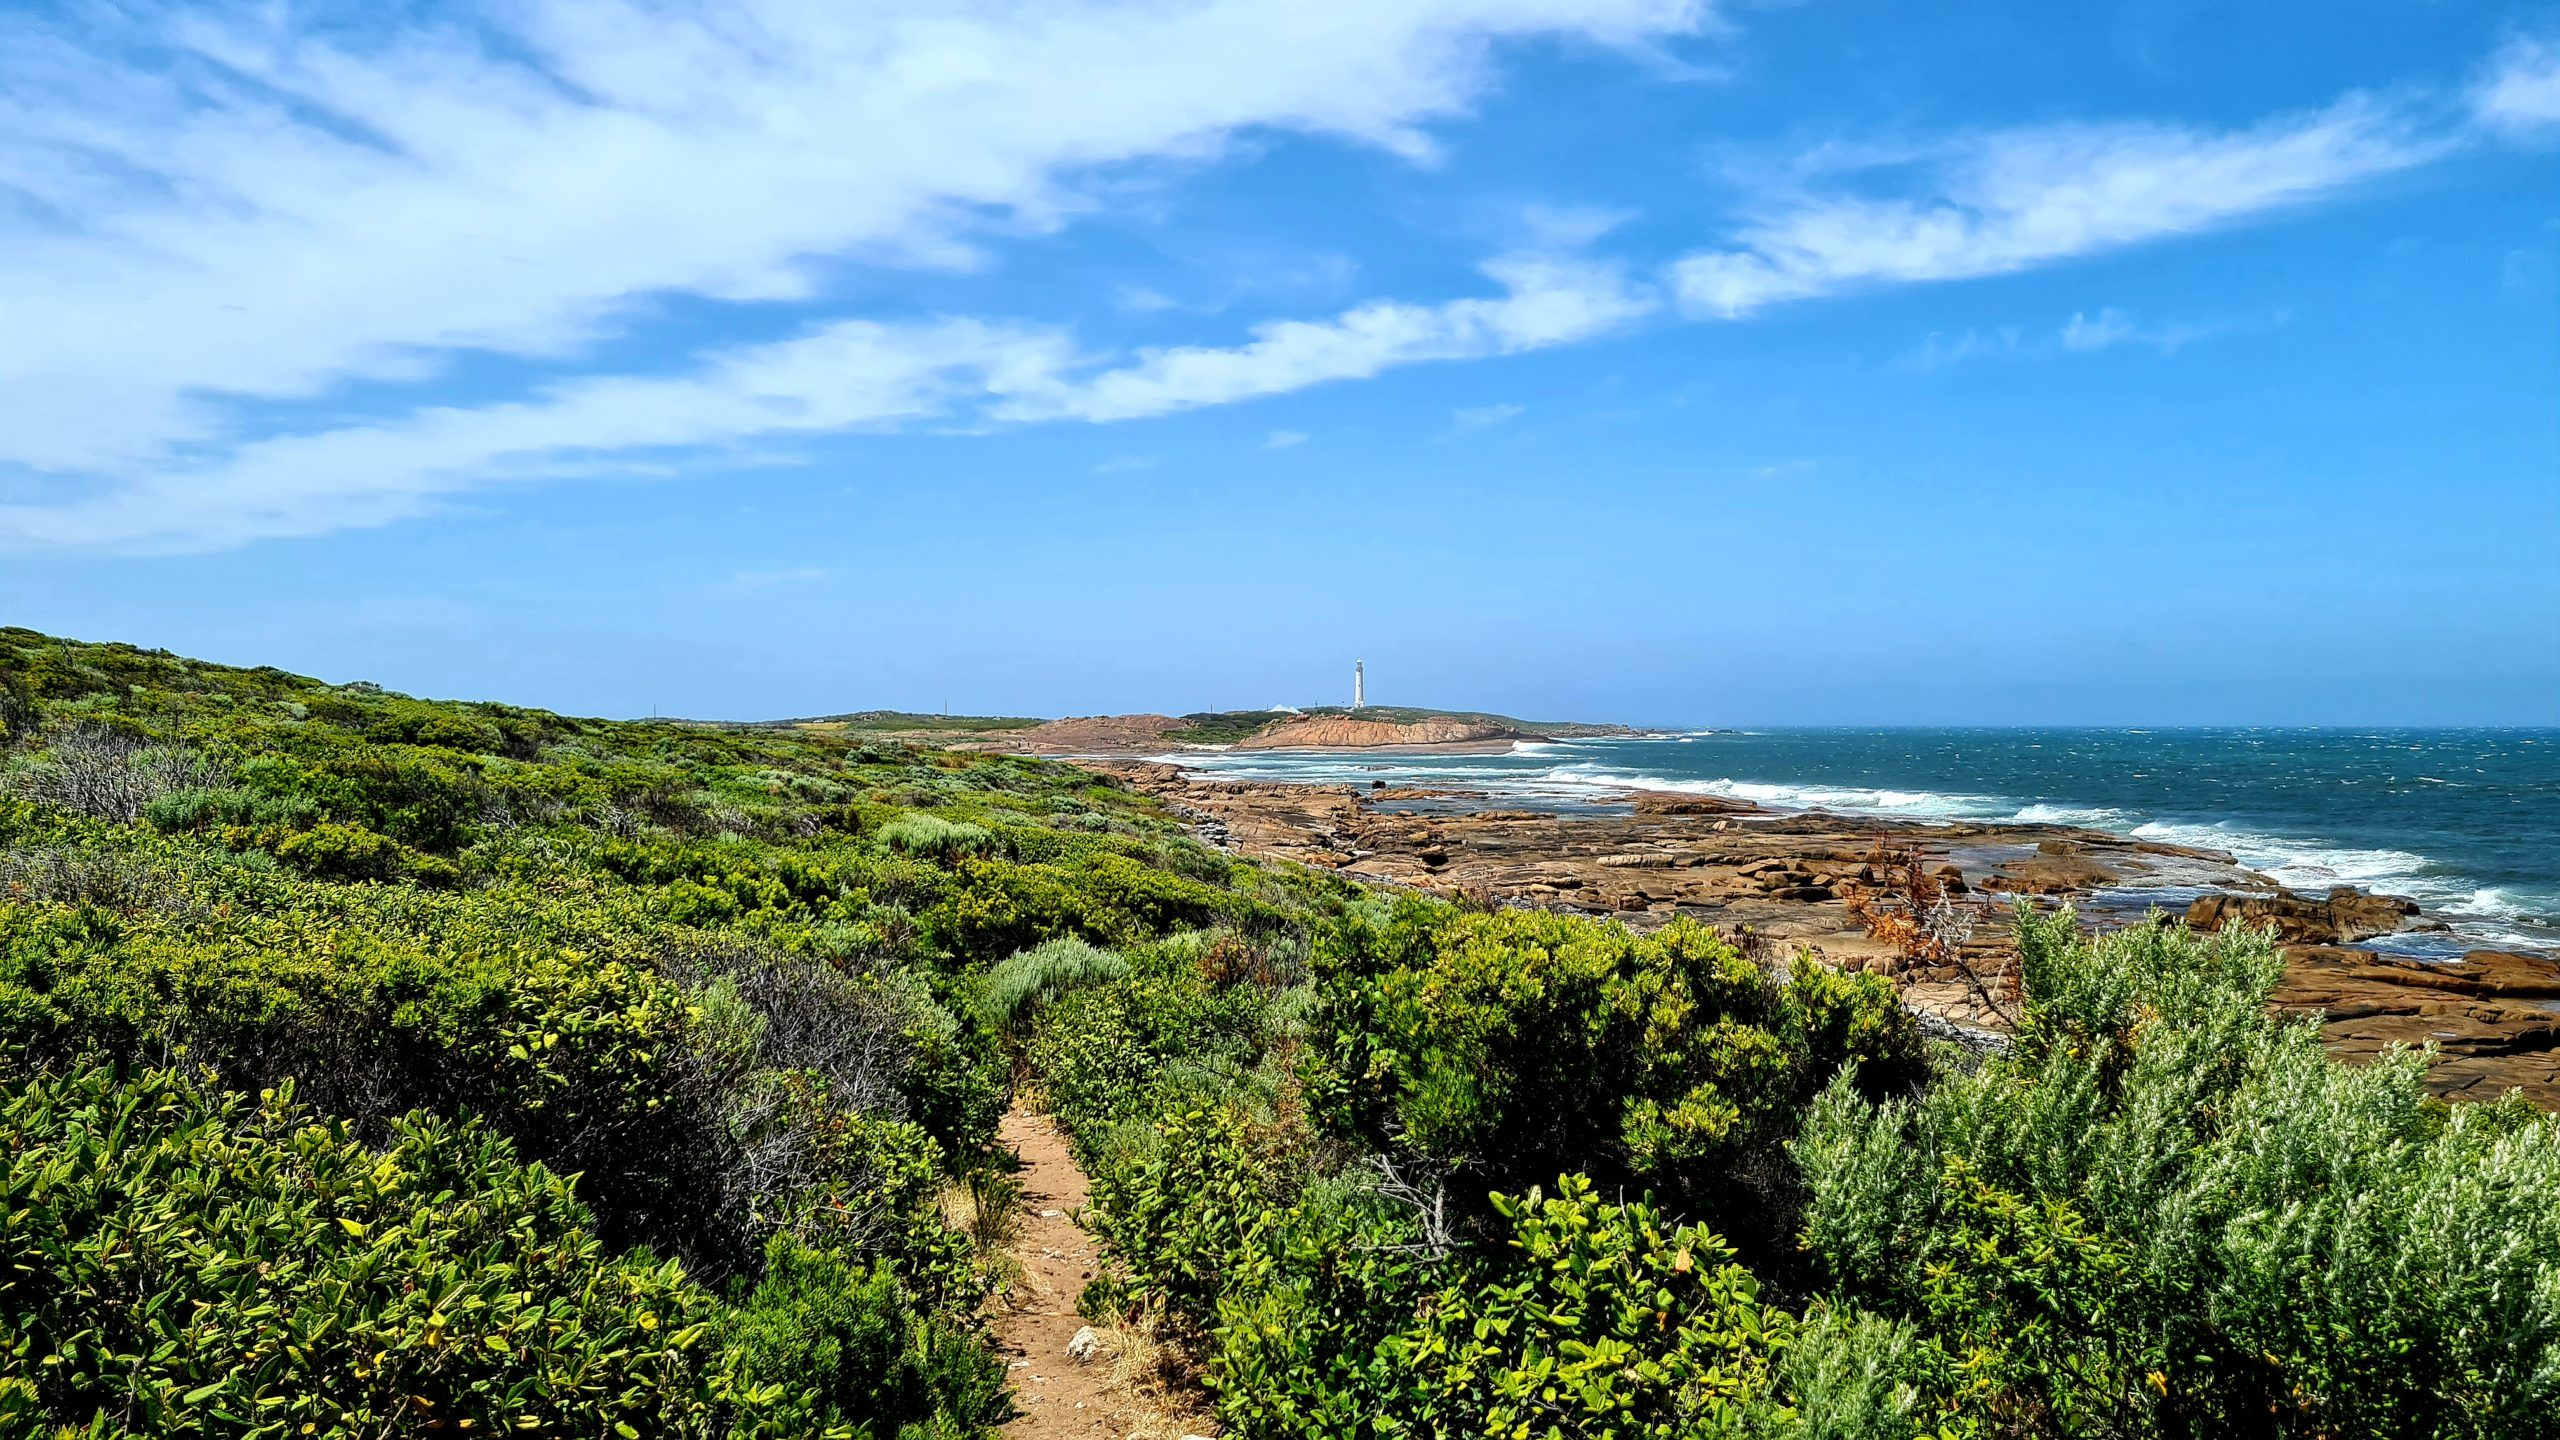 Cape to Cape Track 7-day itinerary